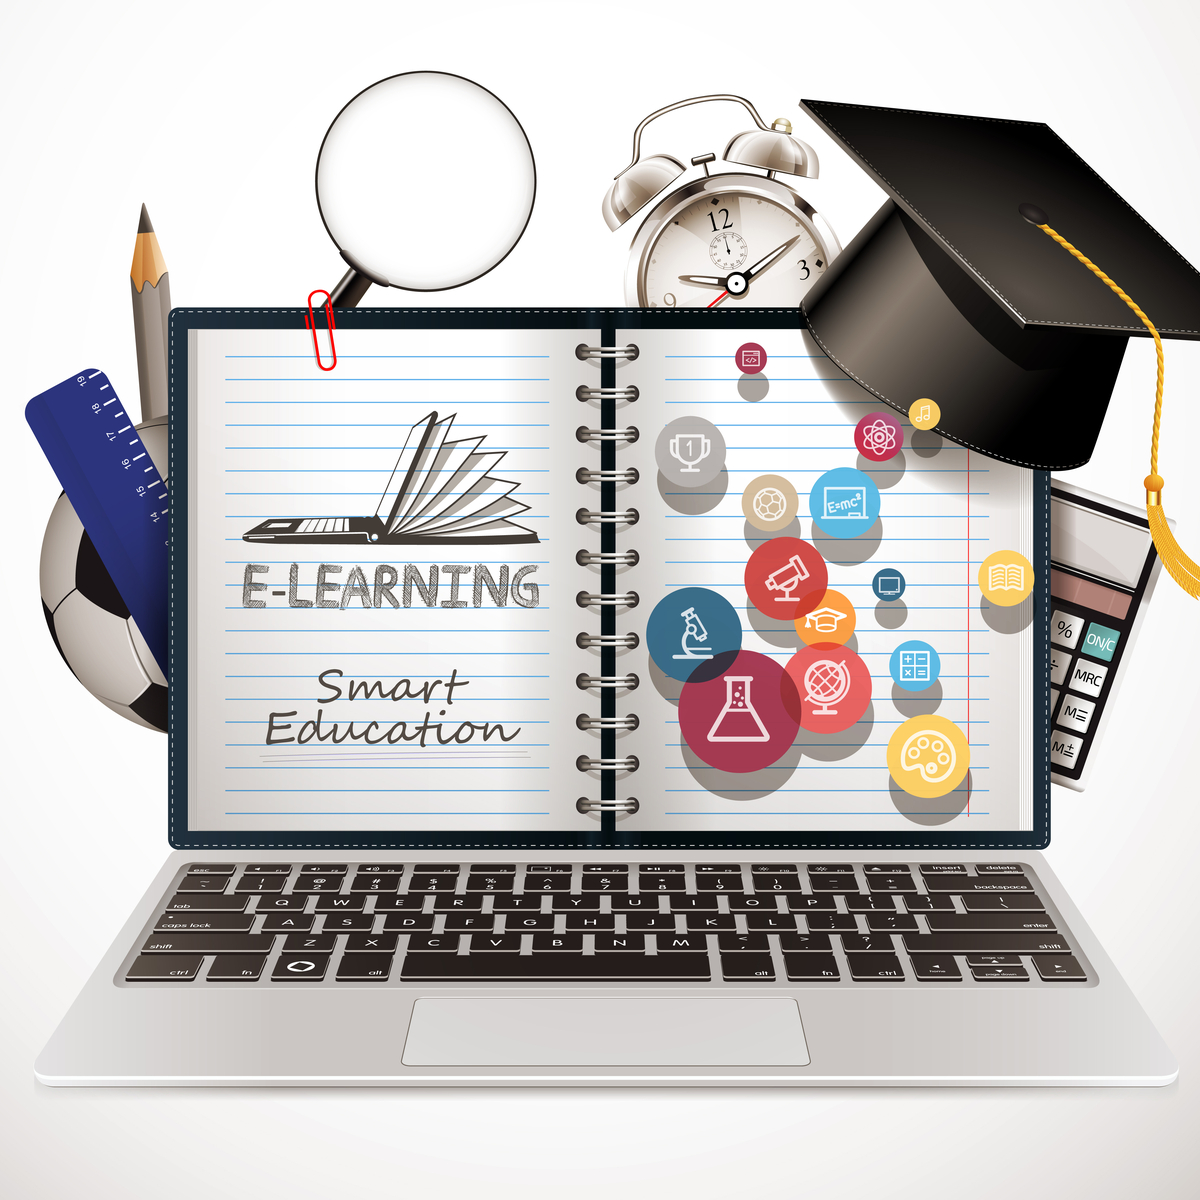 Illustration of a Laptop surrounded by lots of educational images, such as calculators, pencils and rulers.